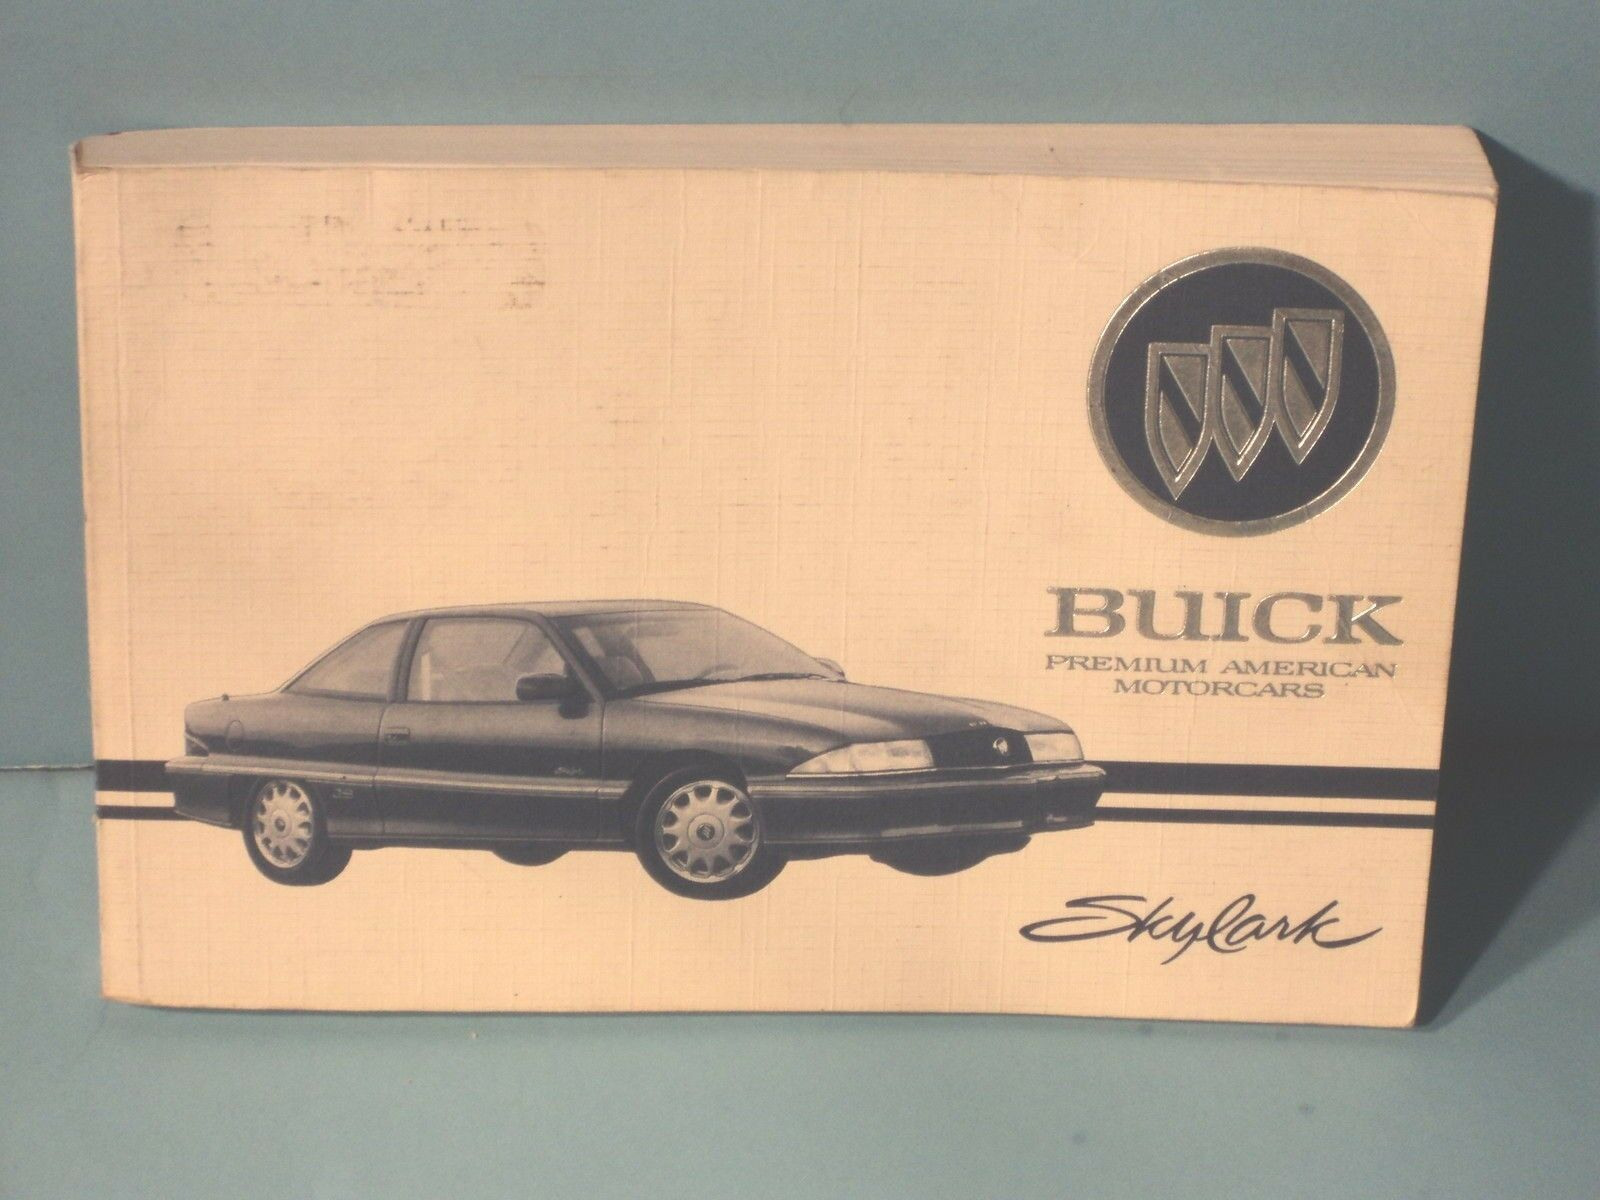 94 1994 Buick Skylark owners manual 1 of 1Only 2 available ...